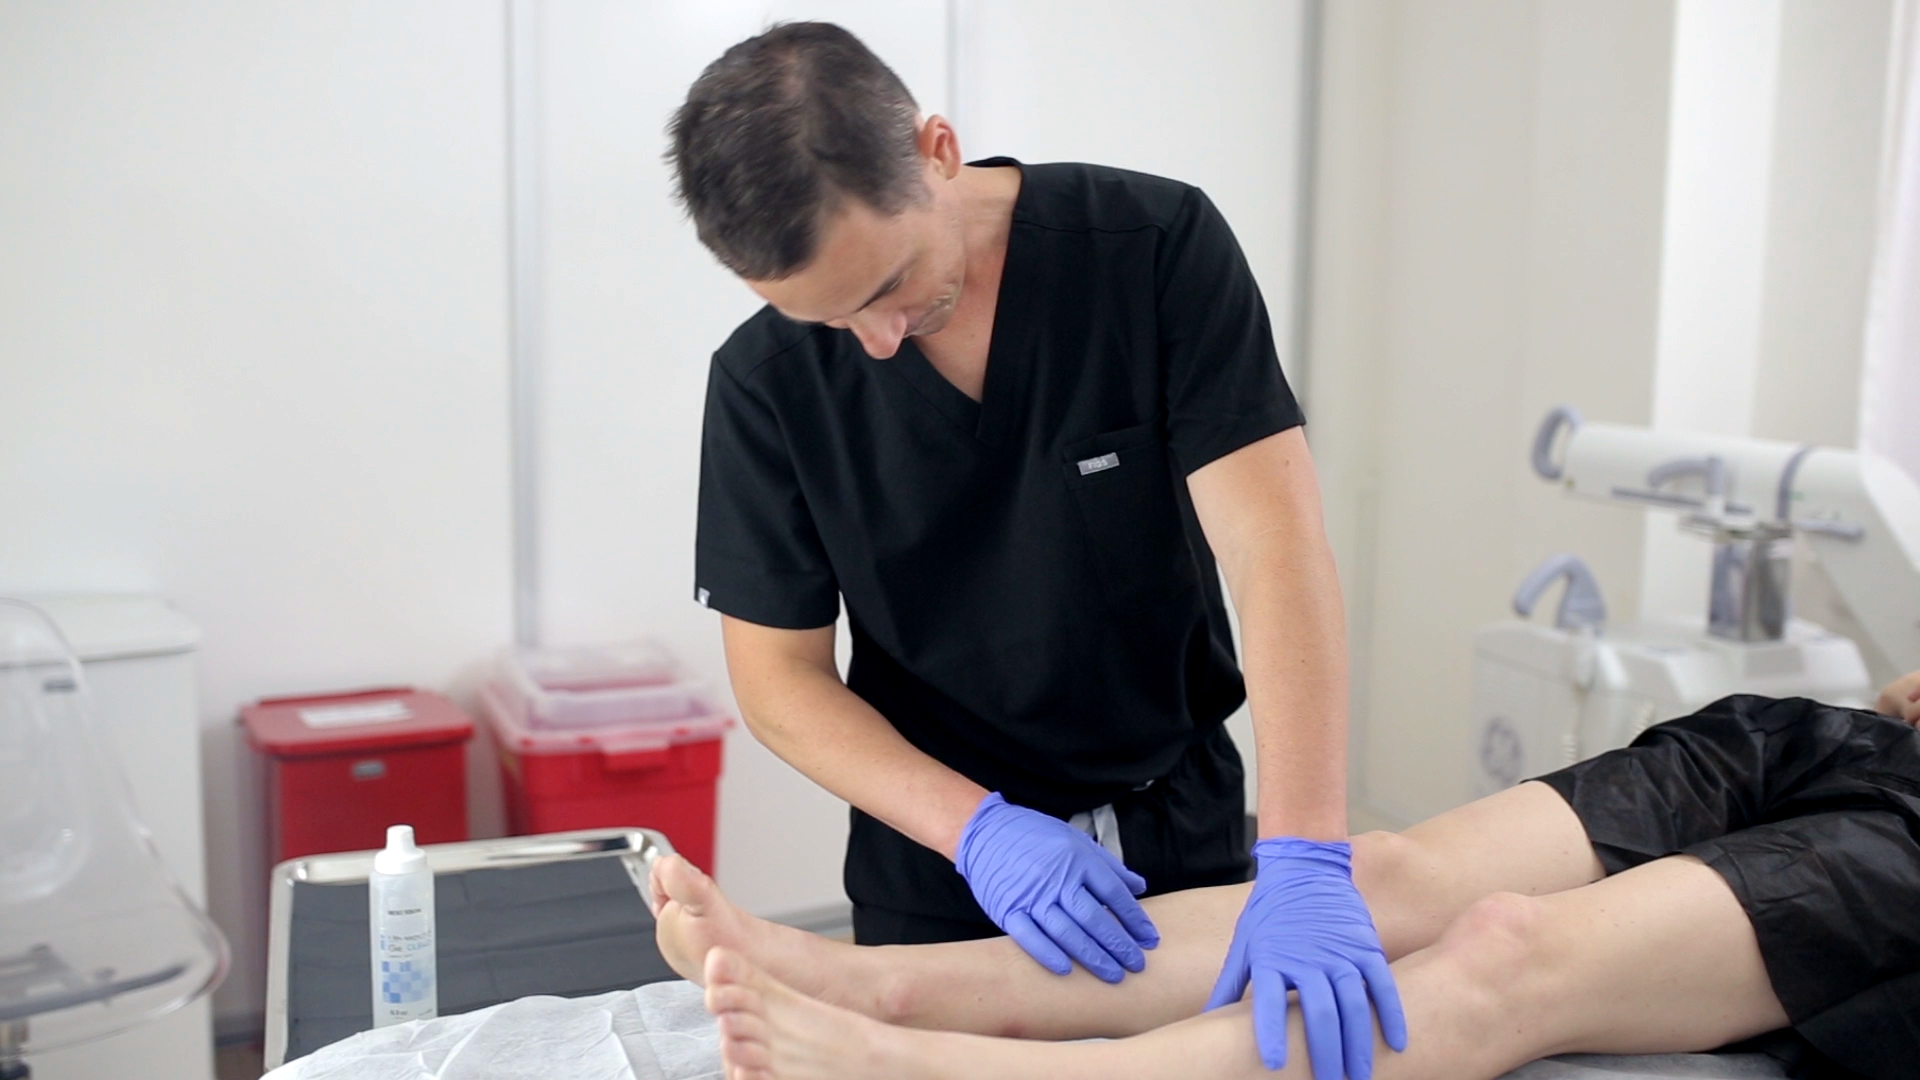 Minimally invasive vein treatments are safe and effective and require no downtime. In this article, experts at a top vein center in California discuss minimally invasive vein treatment options.